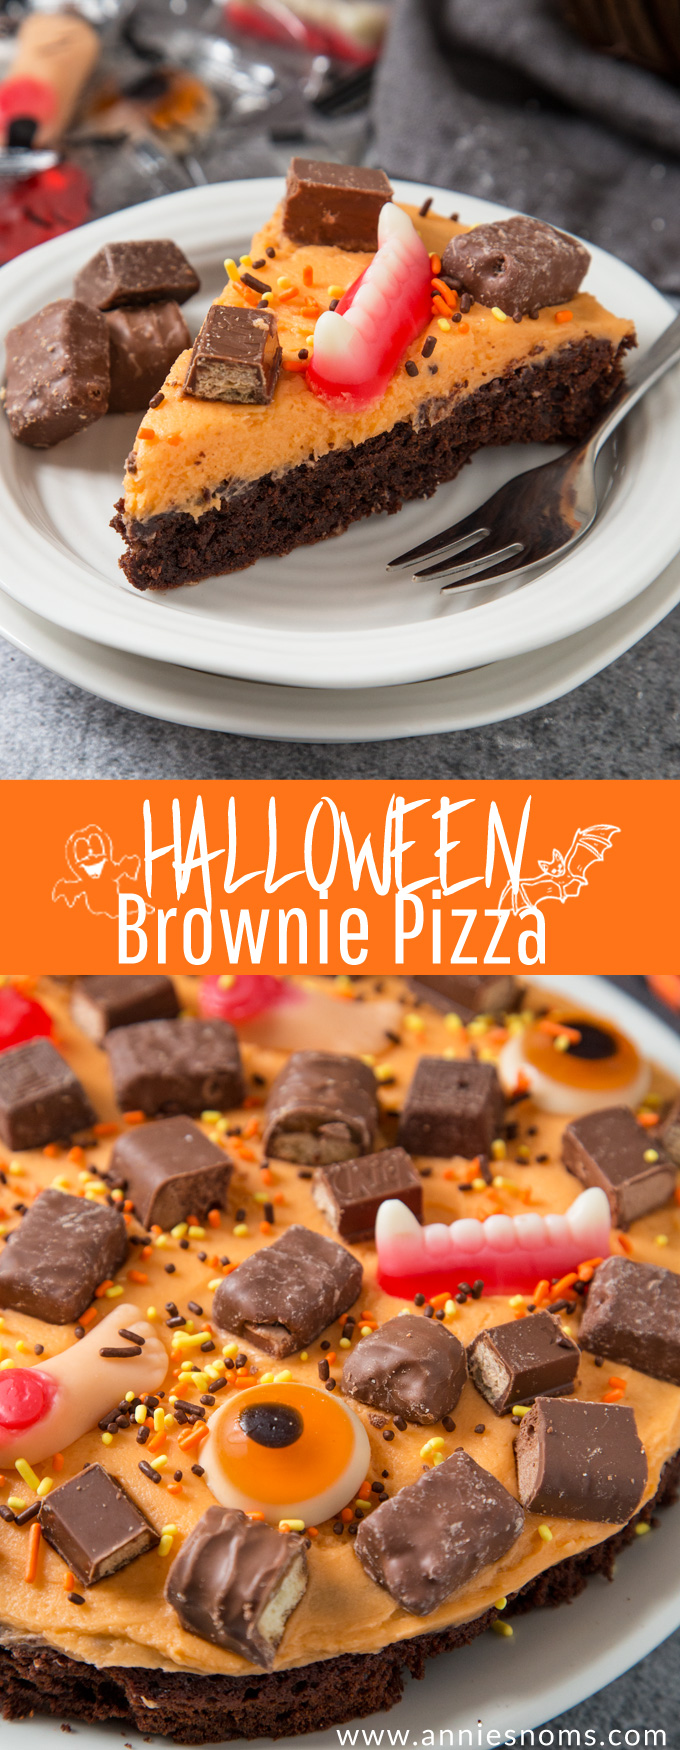 A thick and chewy brownie topped with creamy buttercream and leftover Halloween sweets. Fun to make and super delicious!